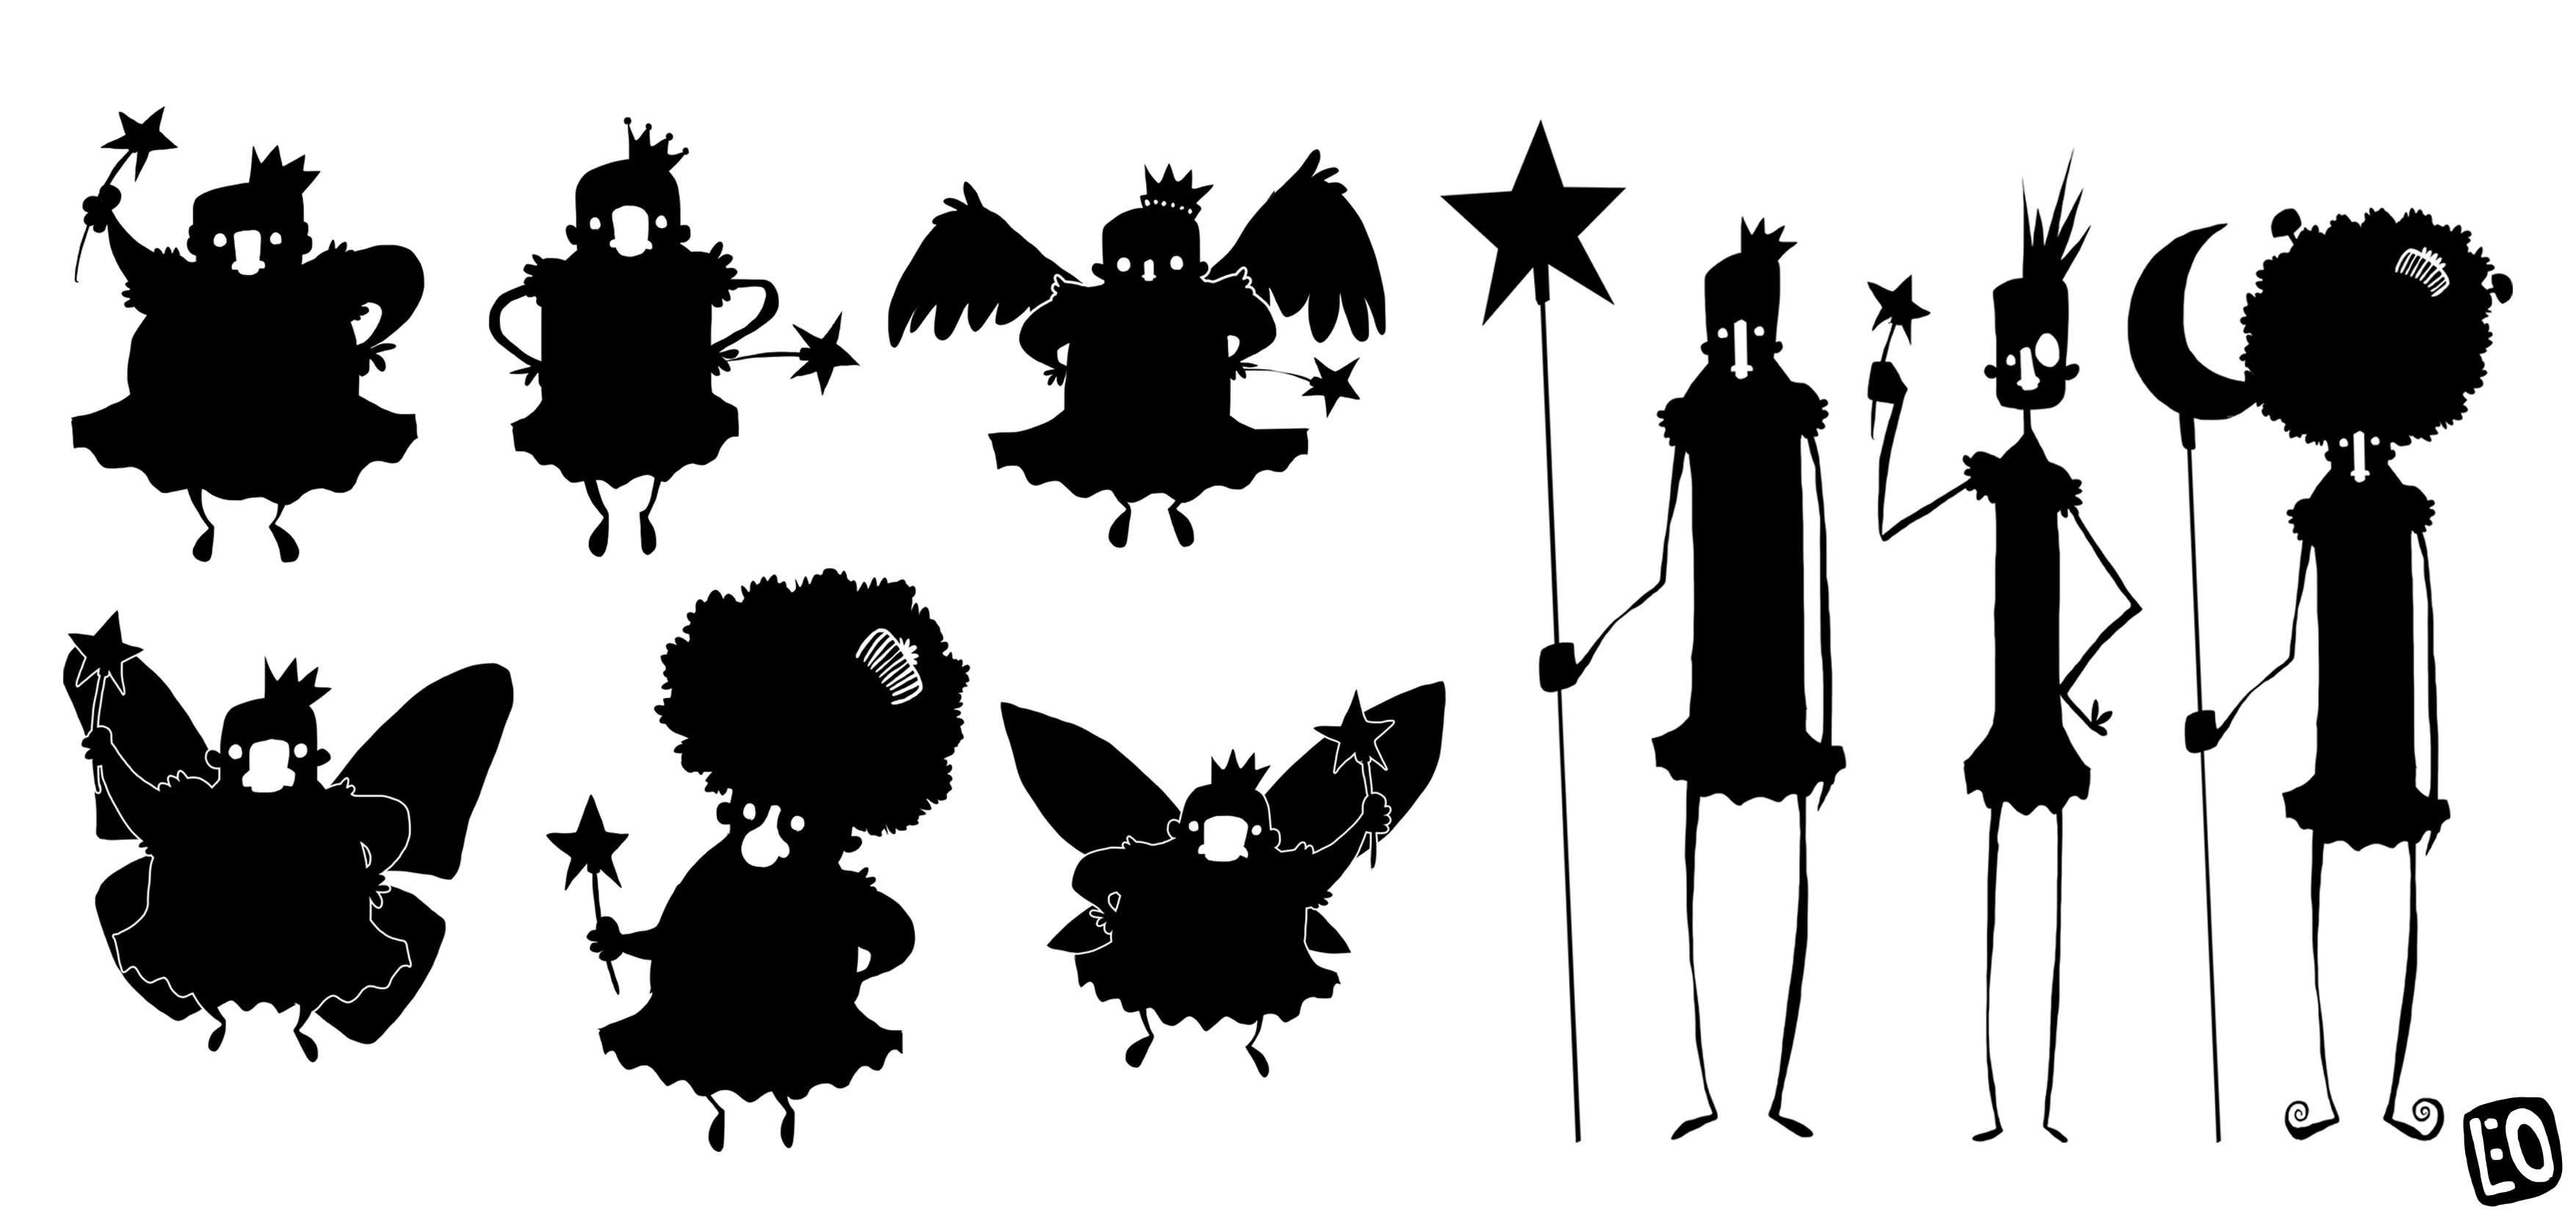 Fairy_God_Father_Concepts_03